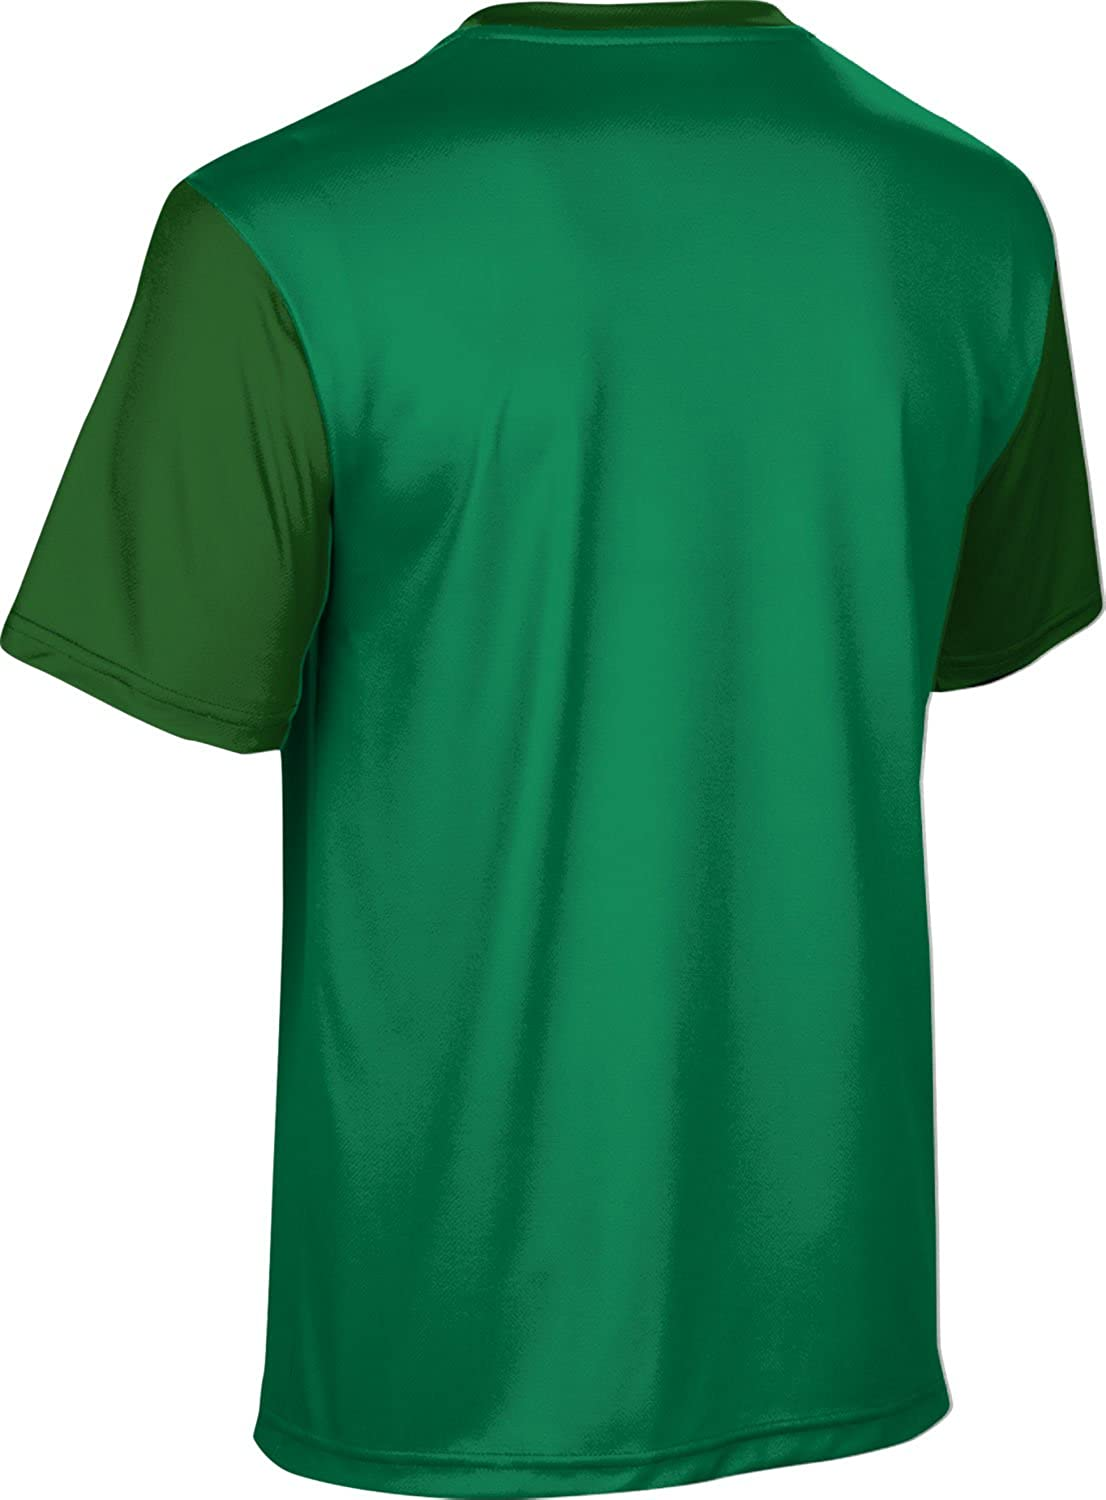 Patricks Day Boys Performance T-Shirt Clover Colorado State University St